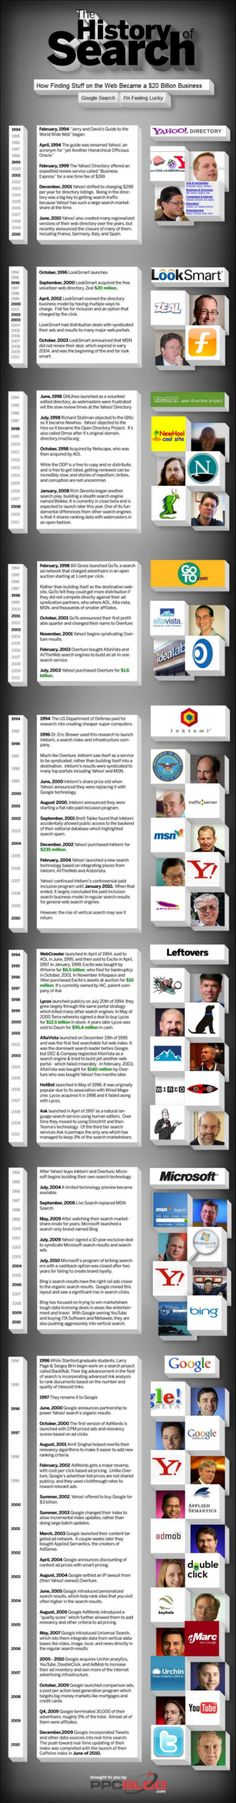 Internet Search Engines History